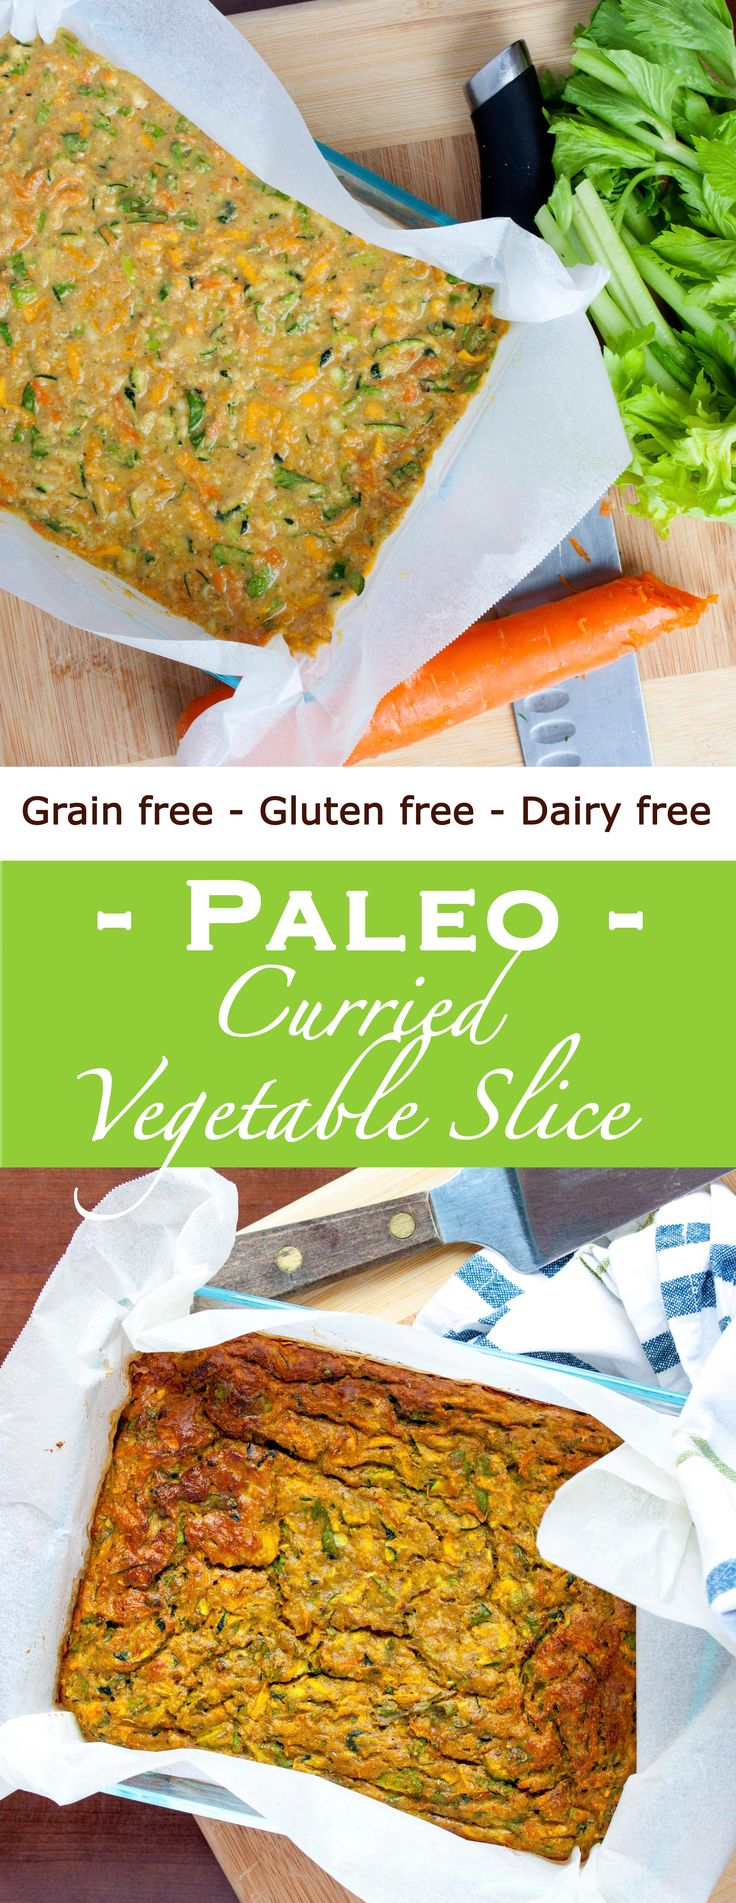 Grain free, gluten free, dairy free Paleo Curried Vegetable slice make the perfect prep meal. Check it out!